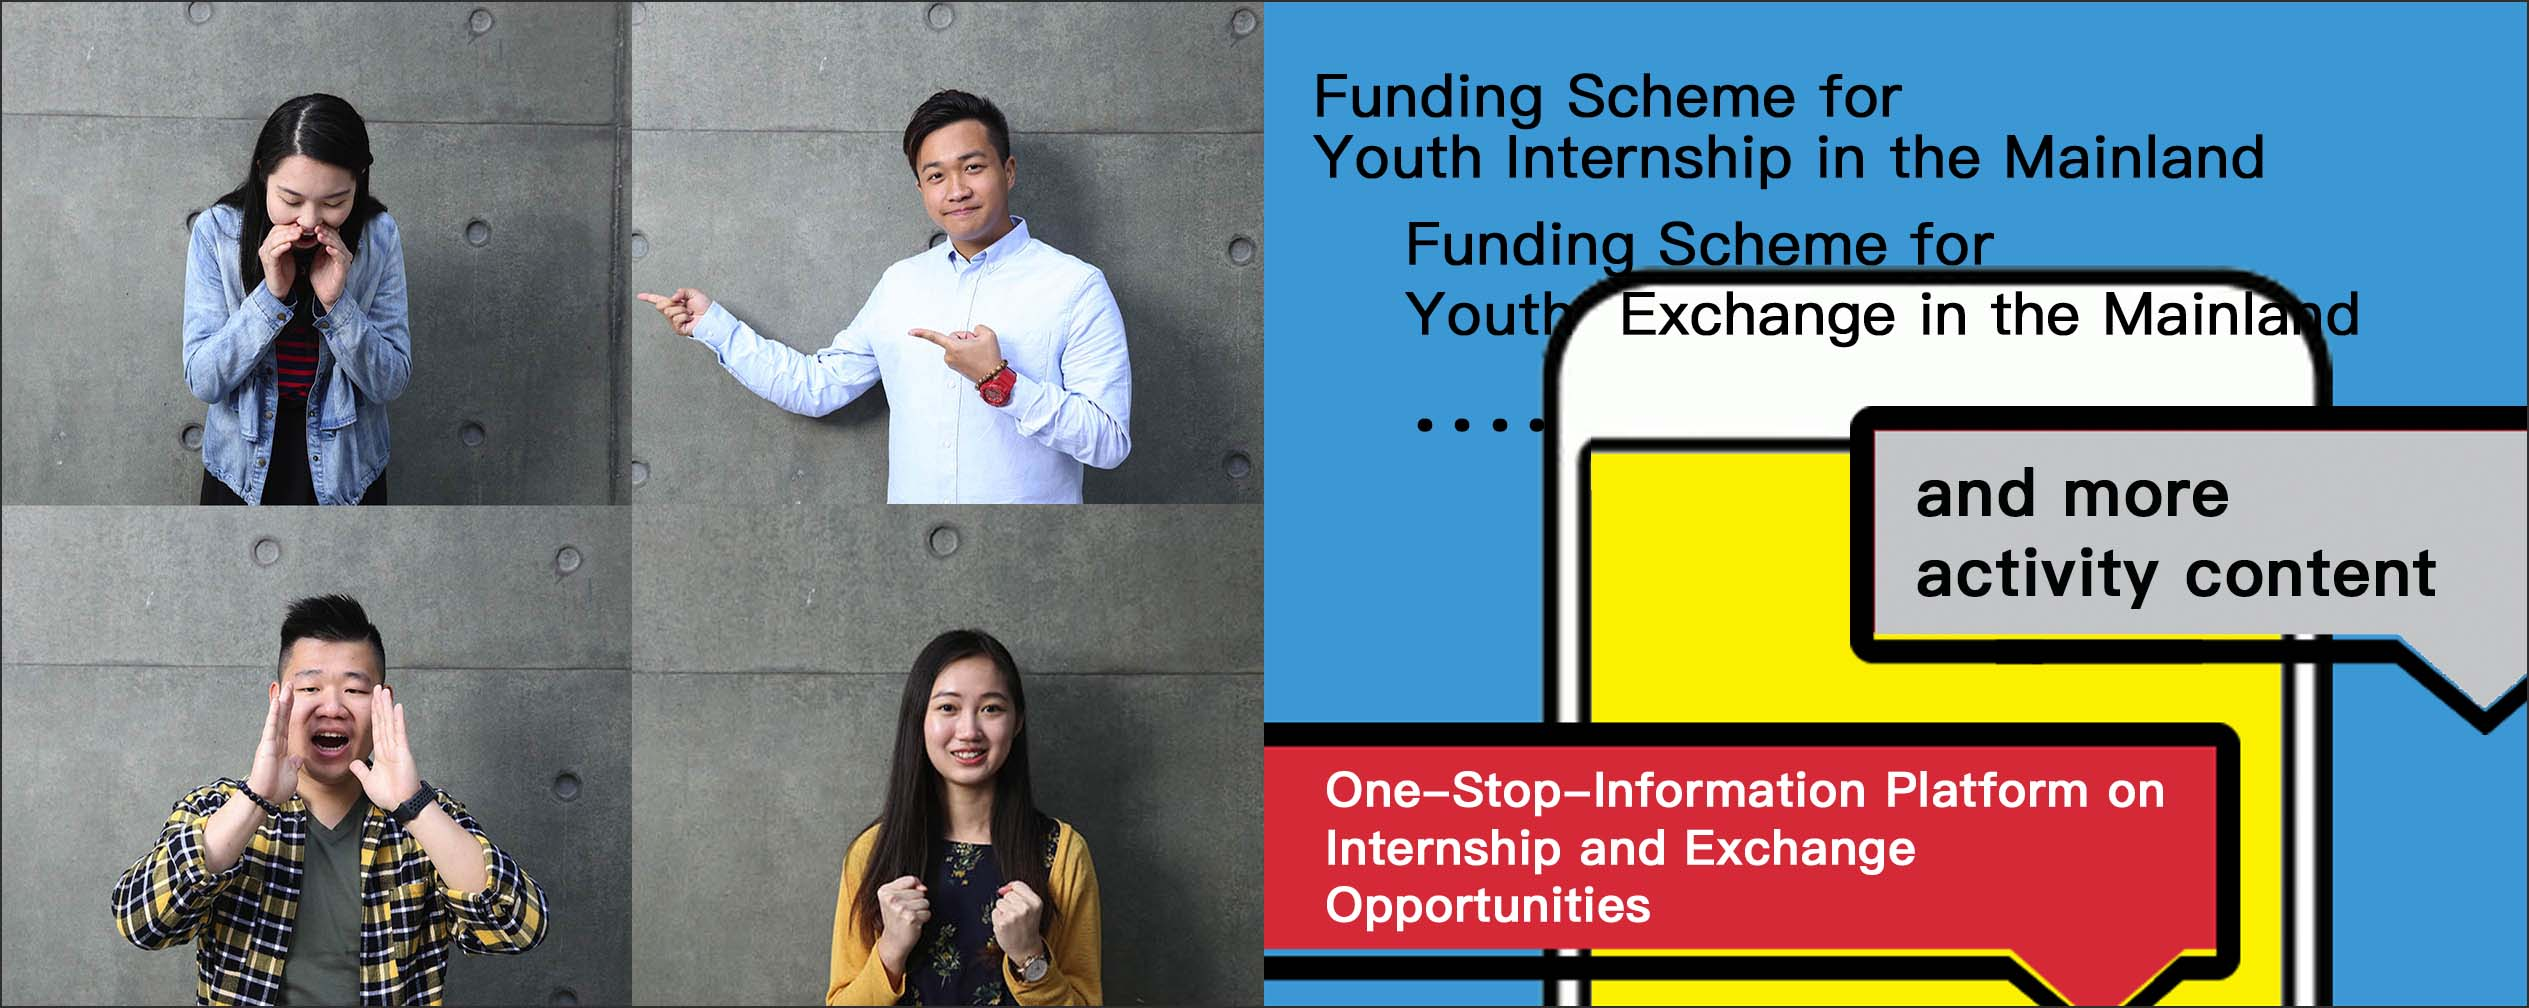 One-Stop-Information Platform on Internship and Exchange Opportunities